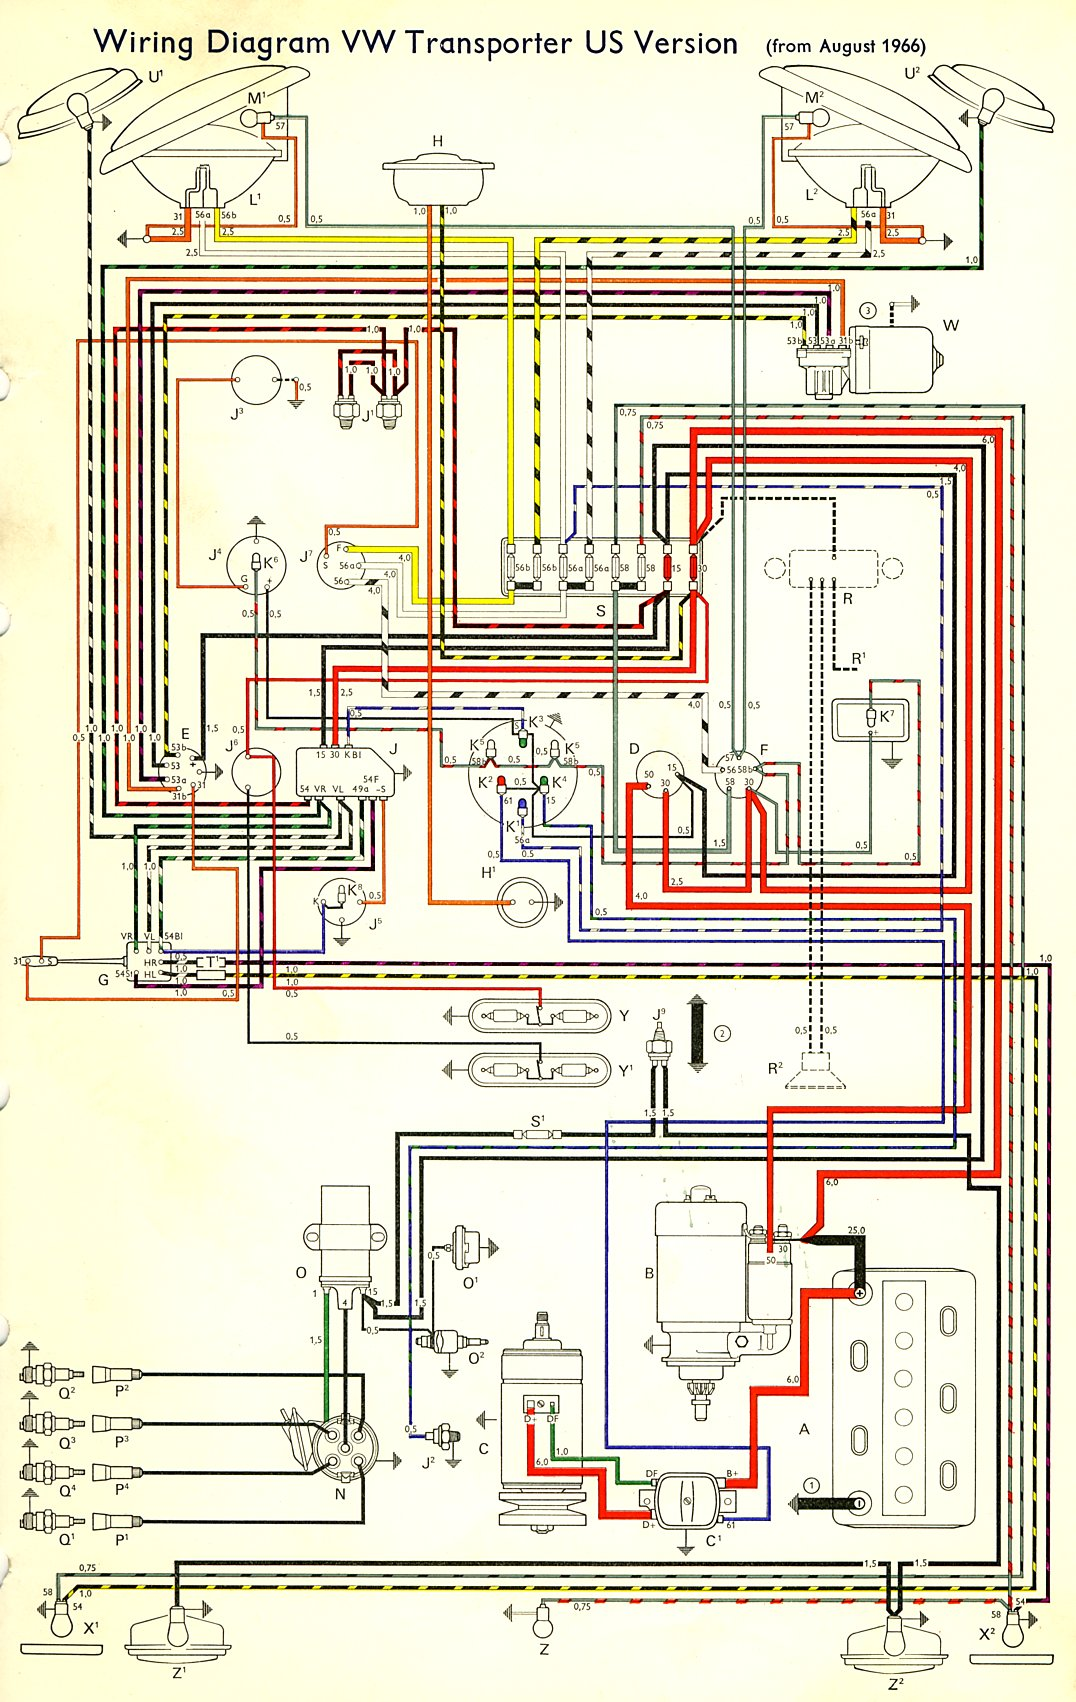 1066 international wiring diagram lighting 1066